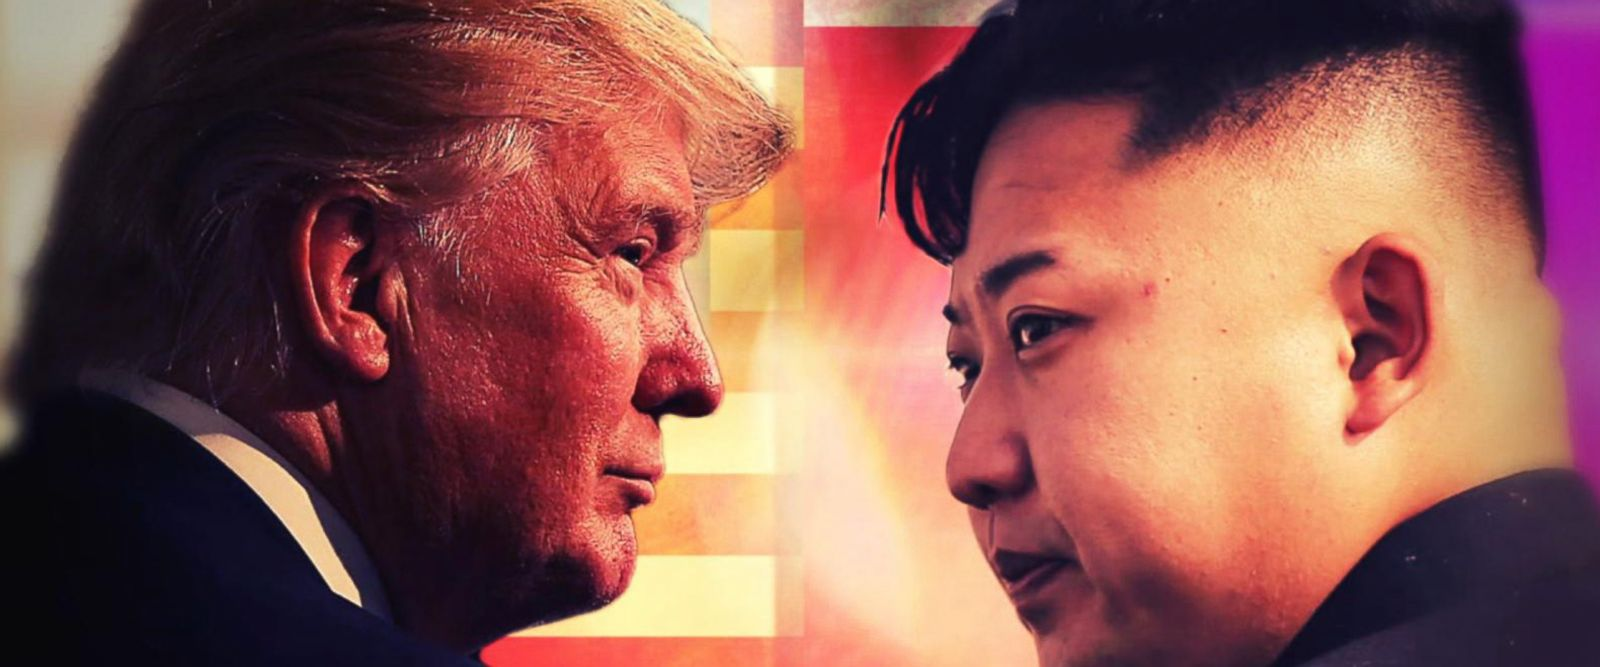 VIDEO: White House continues preparation for possible North Korea summit